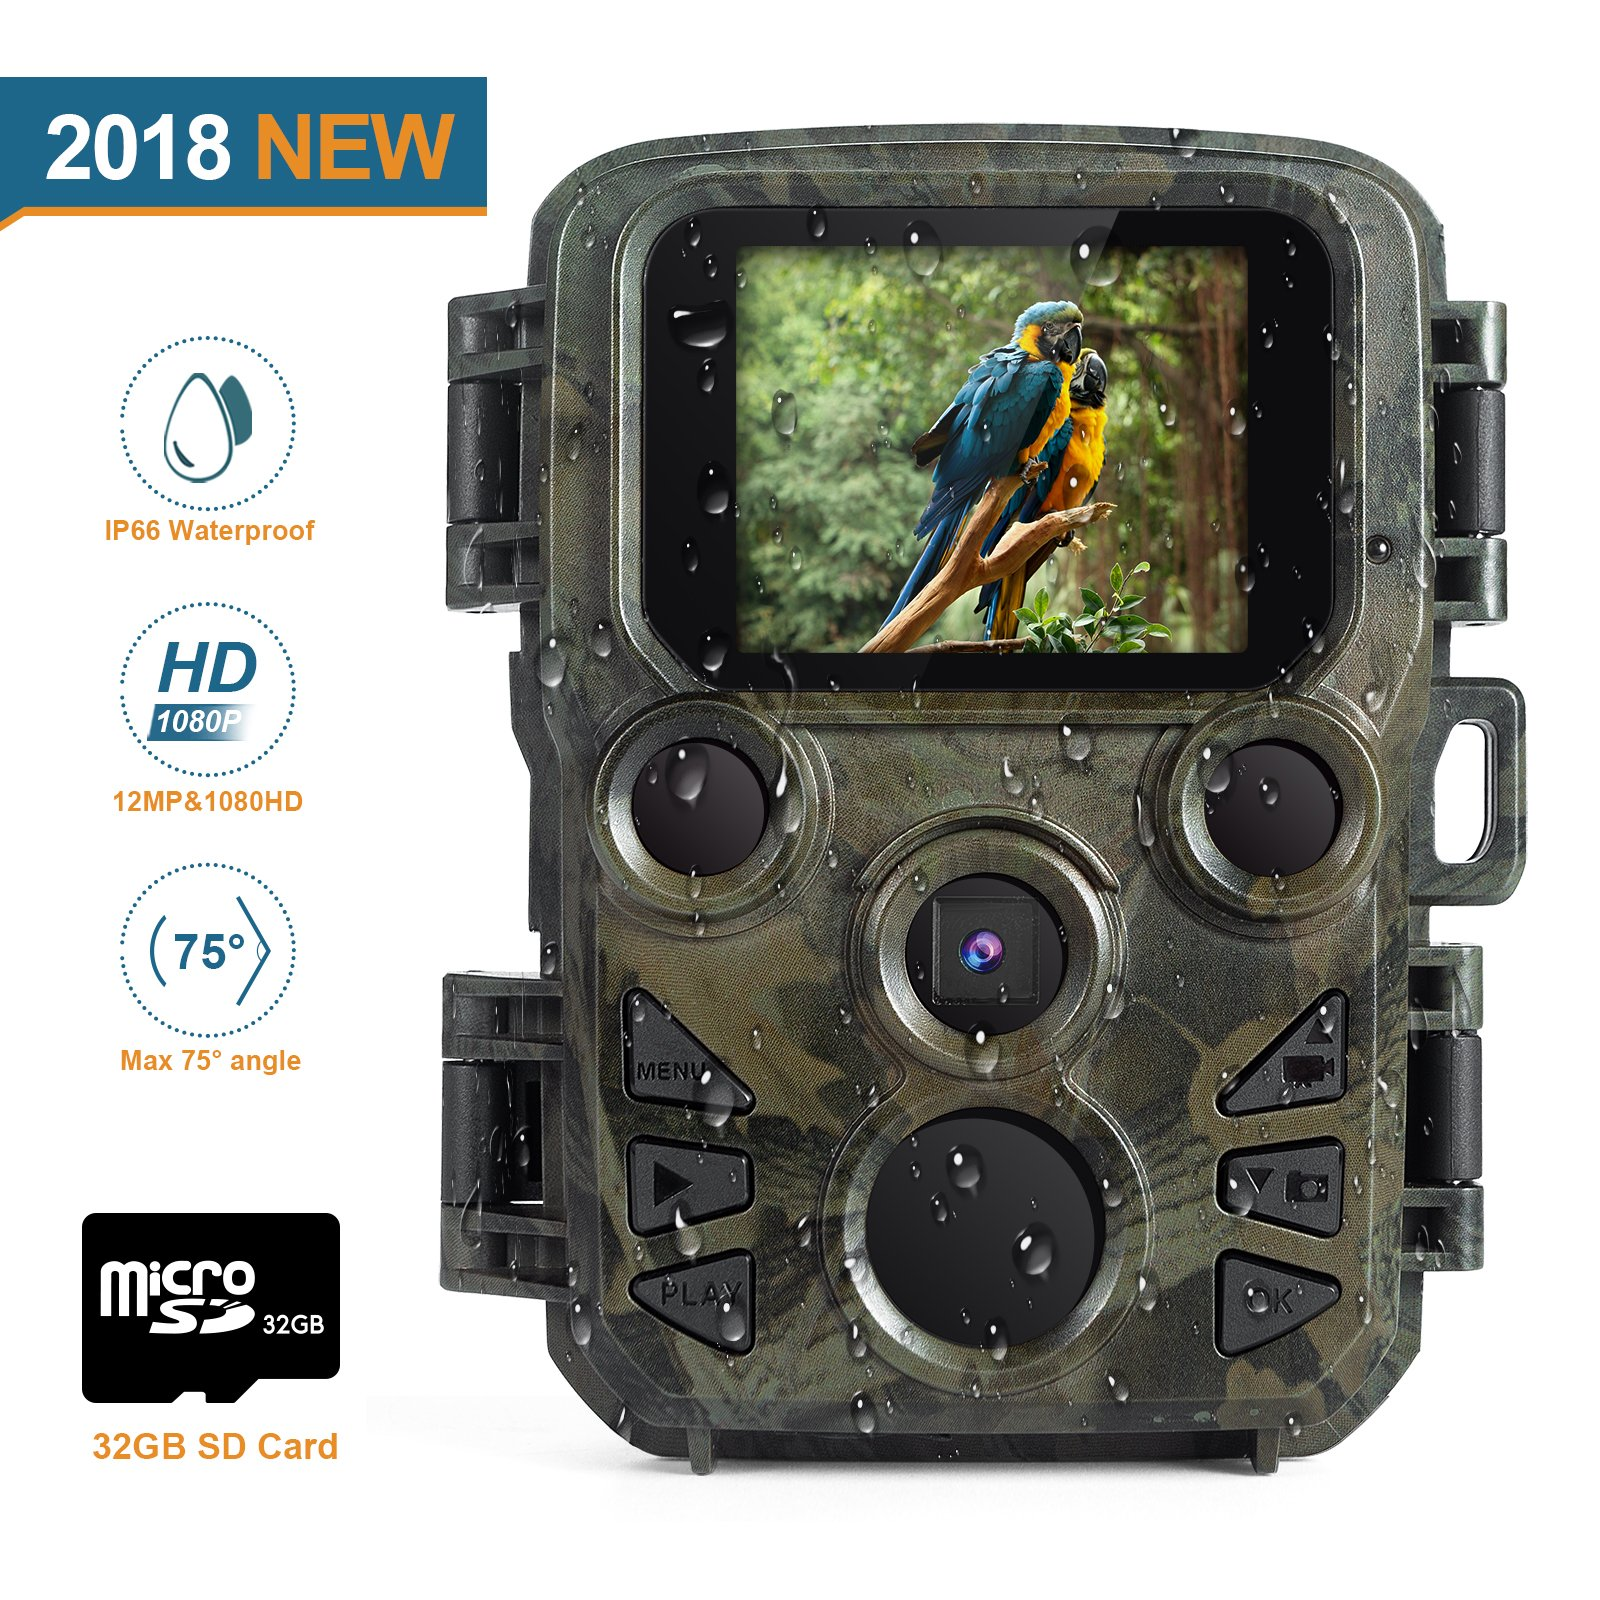 "FLAGPOWER Mini Trail Camera, 12MP 1080P Hunting Game Camera, 0.45s Motion Wildlife Camera with 32 GB TF Card 60ºPIR Sensor Infrared Night Vision,2.0""LCD Display, IP66 Waterproof"